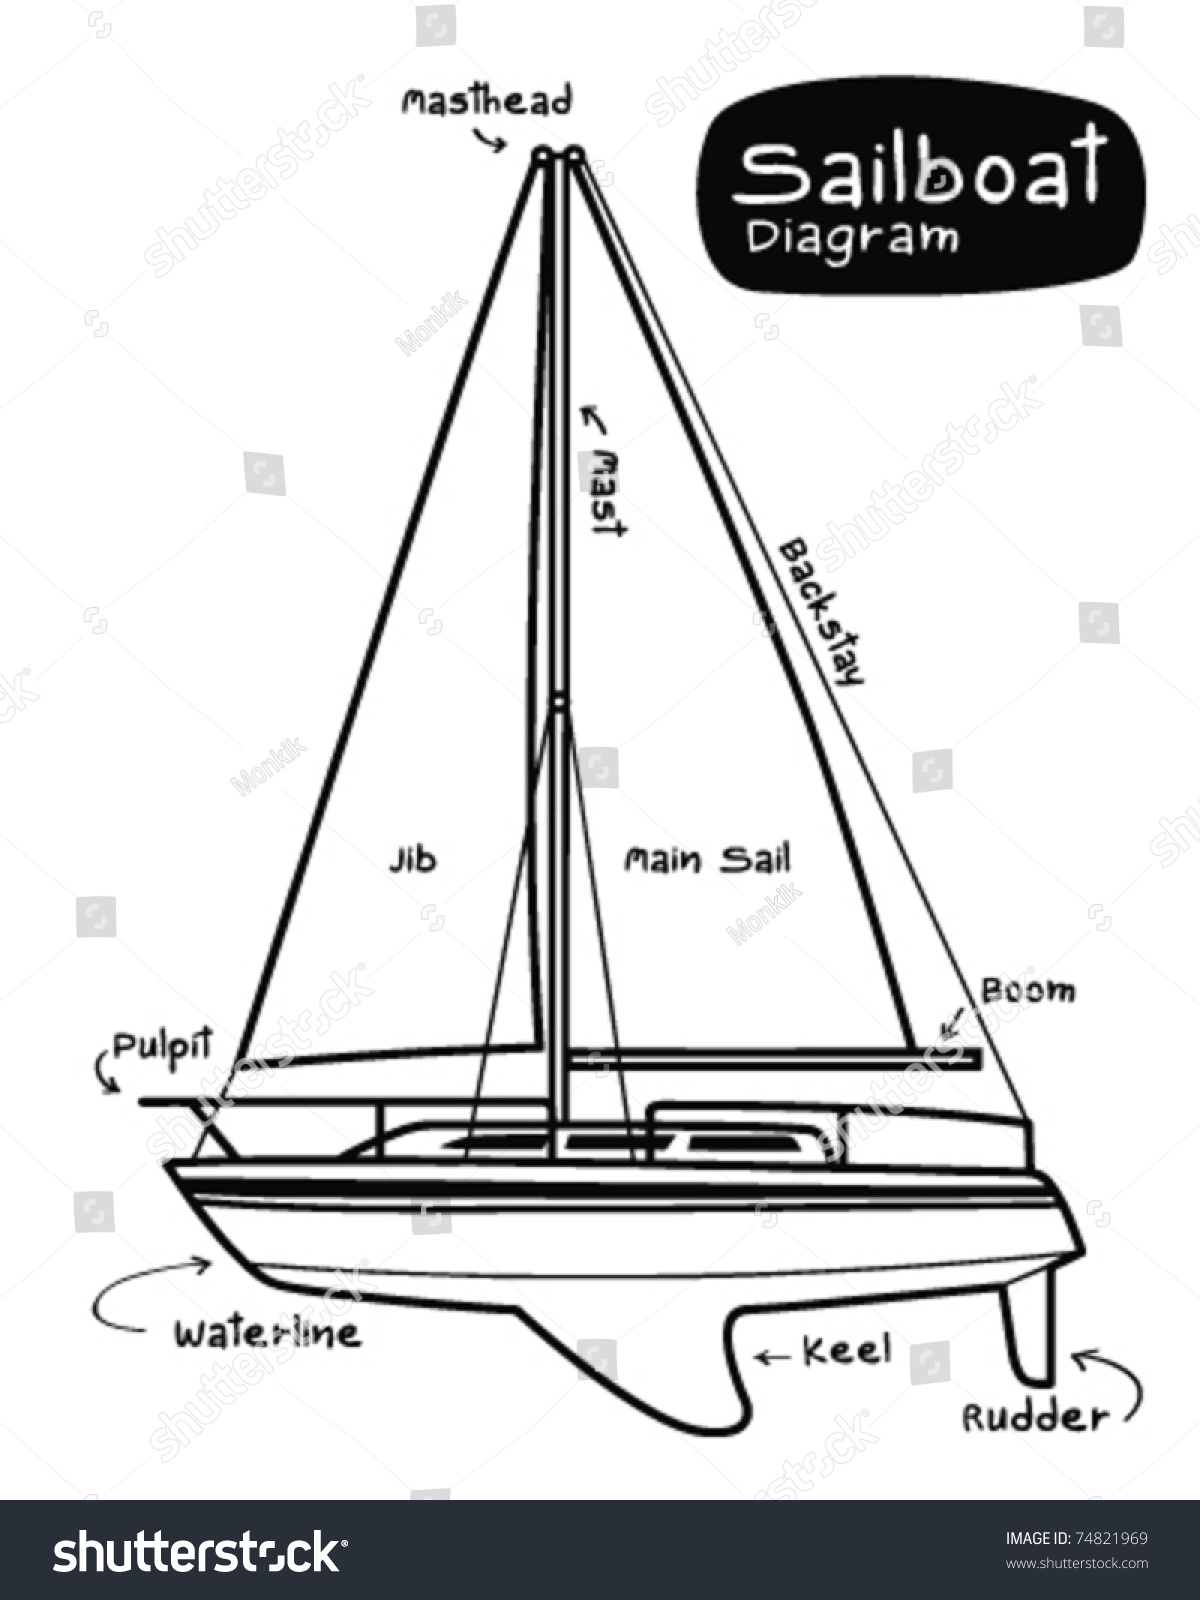 Sailboat Diagram Stock Vector Illustration 74821969   Shutterstock